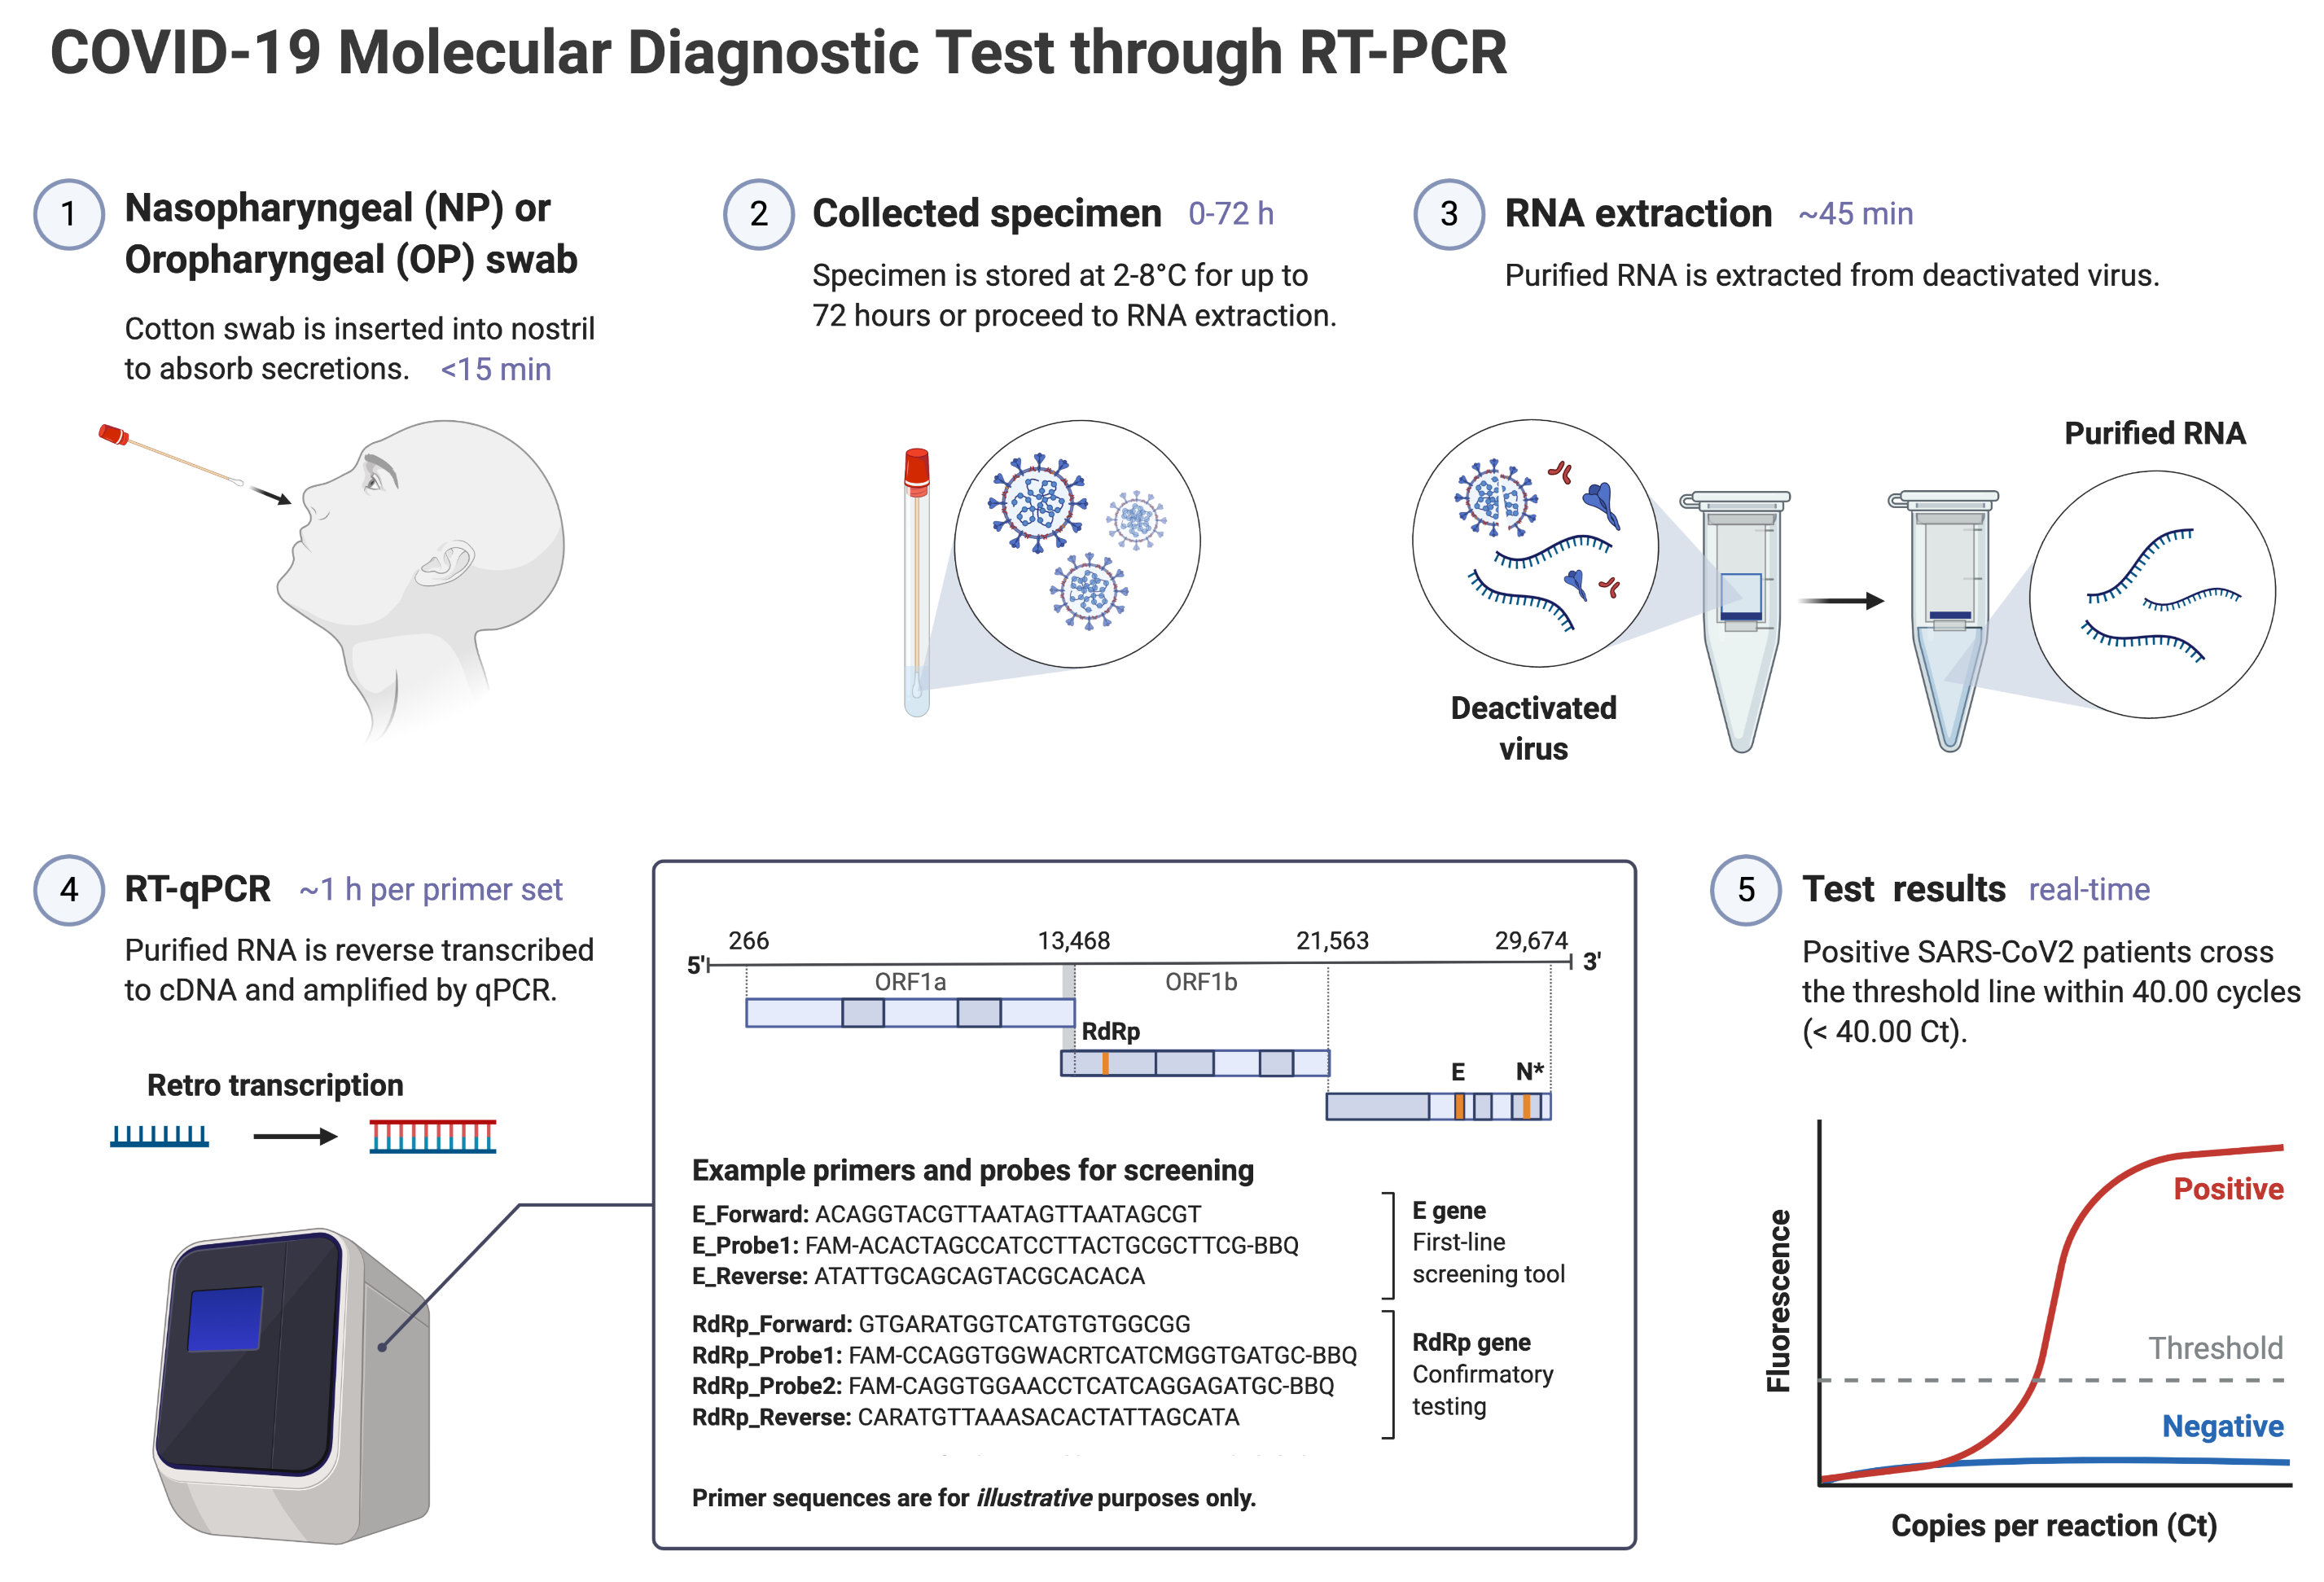 COVID-19 Molecular Diagnostic through RT-PCR